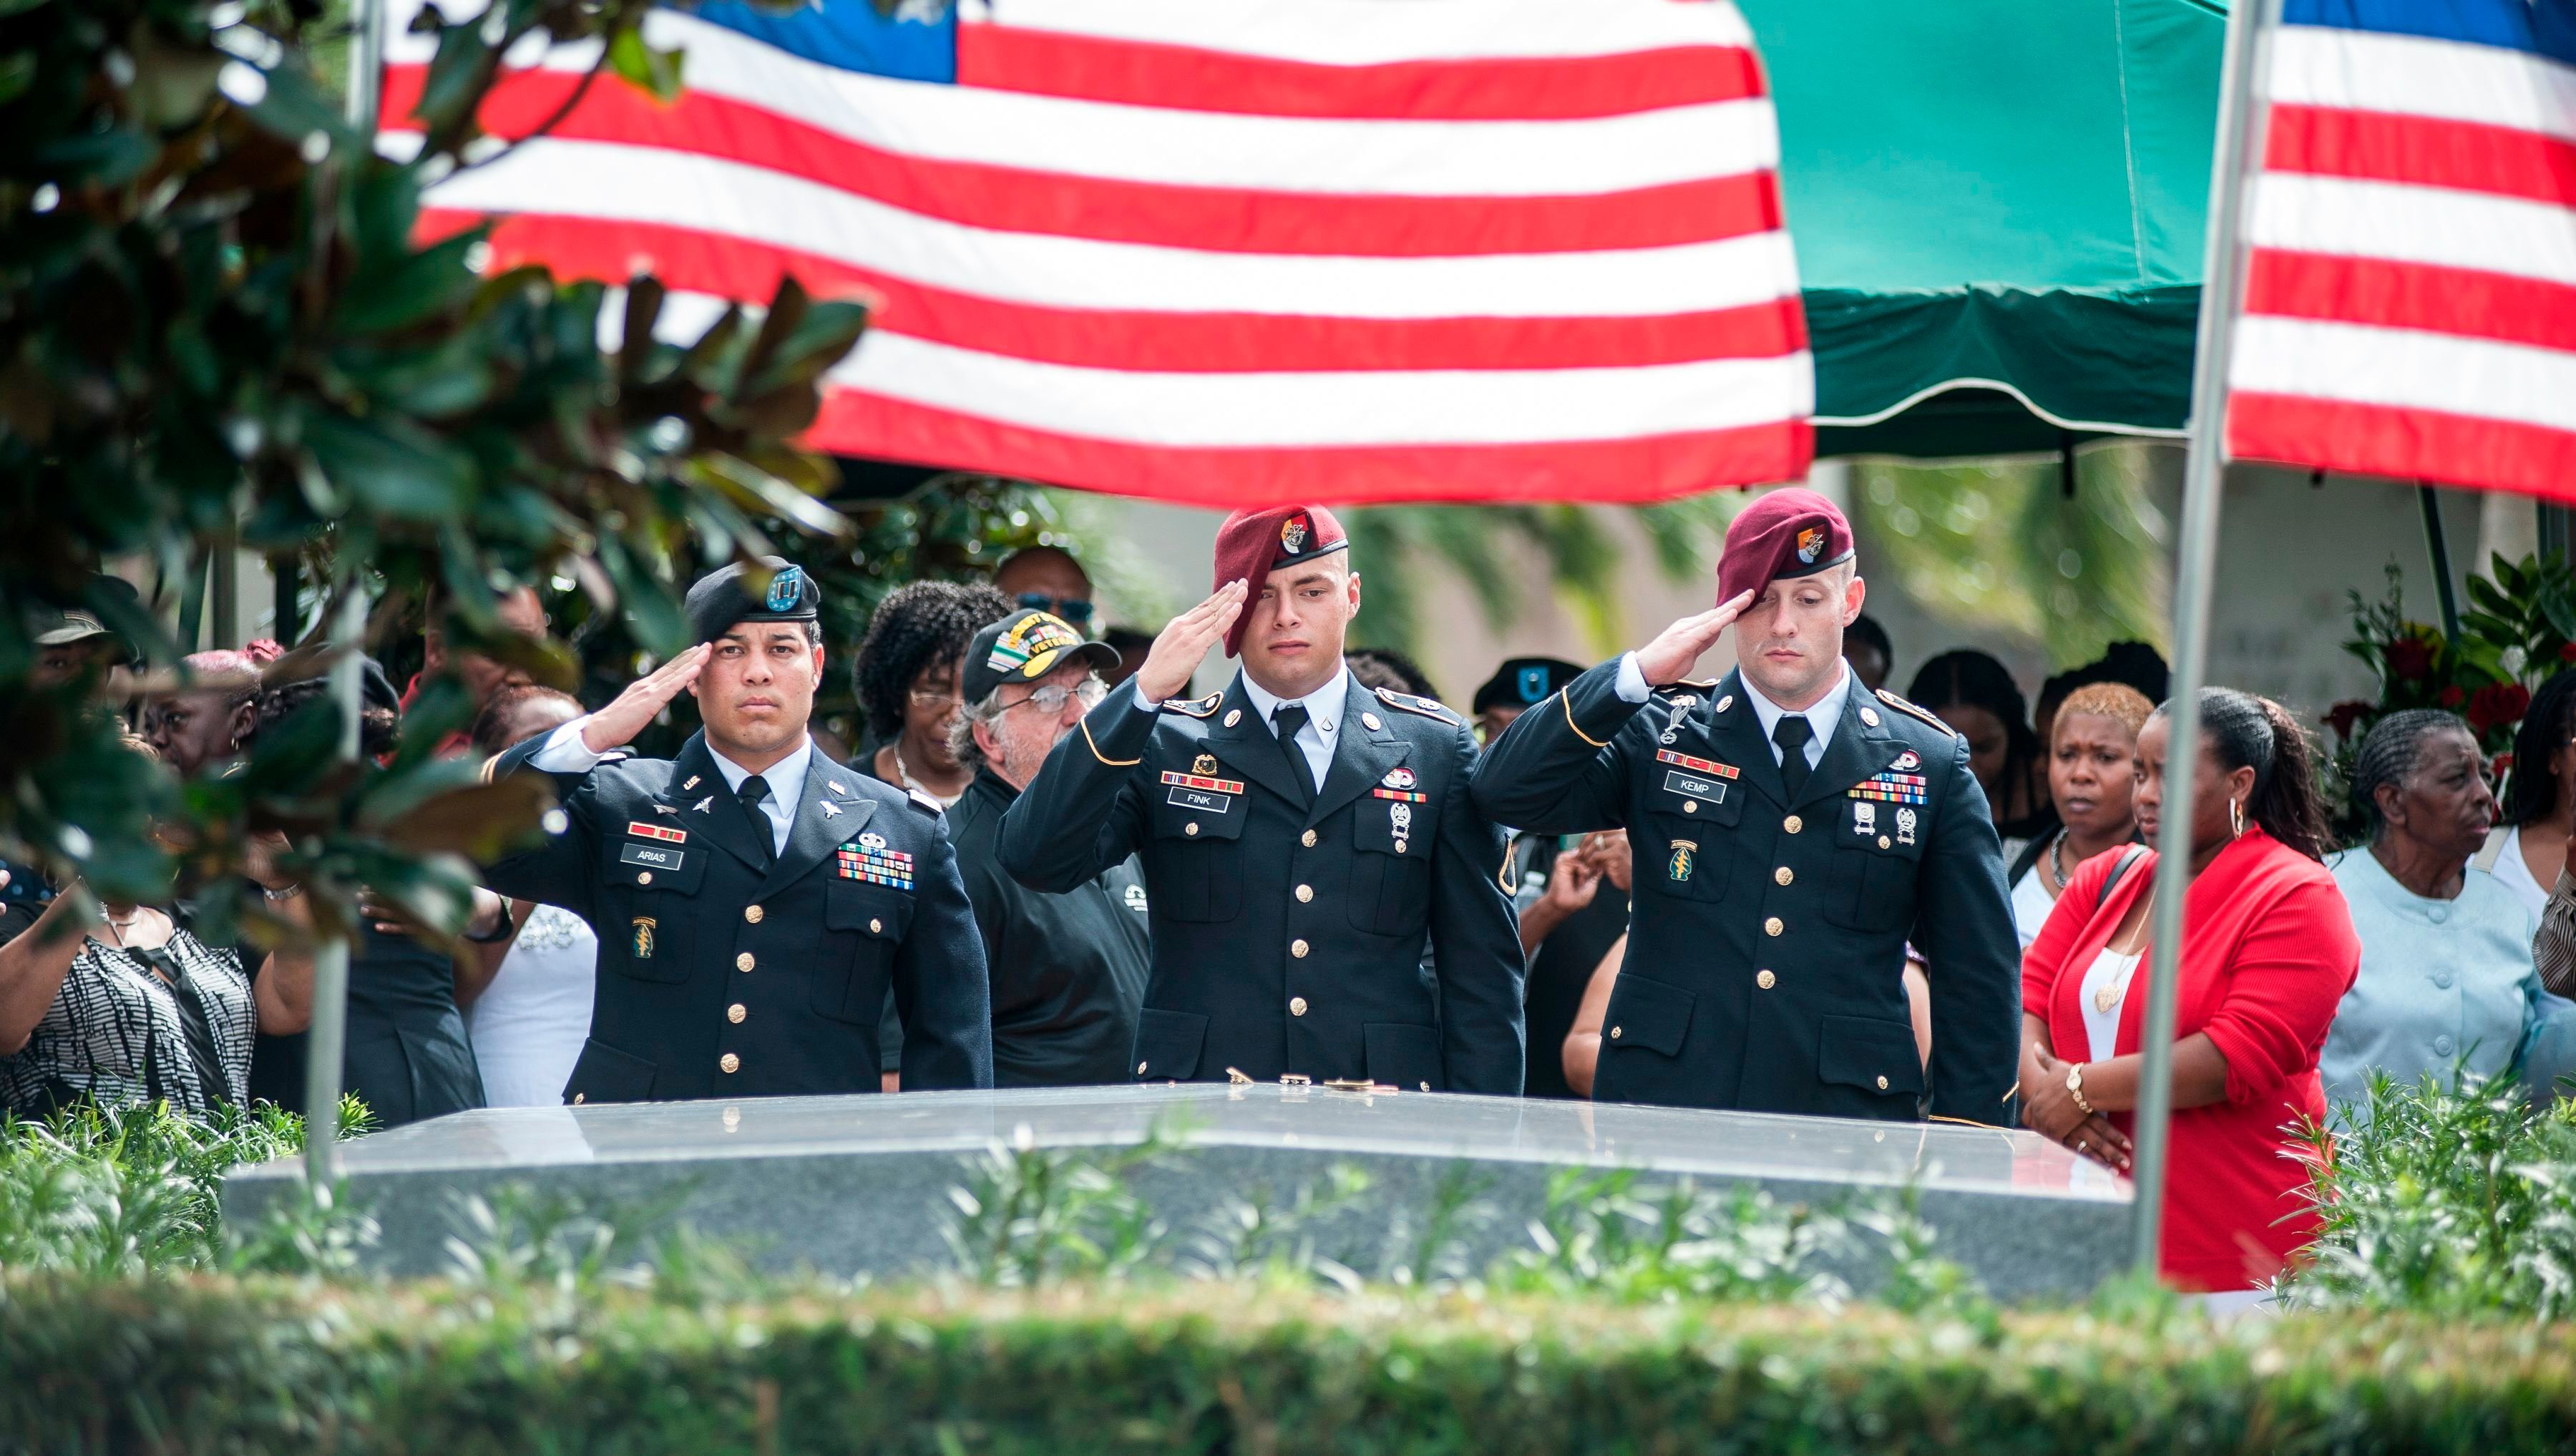 Members of the 3rd Special Forces Group, 2nd battalion salute the casket of US Army Sgt. La David Johnson at his burial service in the Memorial Gardens East cemetery on October 21, 2017 in Hollywood, Florida. Sgt. Johnson and three other US soldiers were killed in an ambush in Niger on October 4. / AFP PHOTO / GASTON DE CARDENAS        (Photo credit should read GASTON DE CARDENAS/AFP/Getty Images)